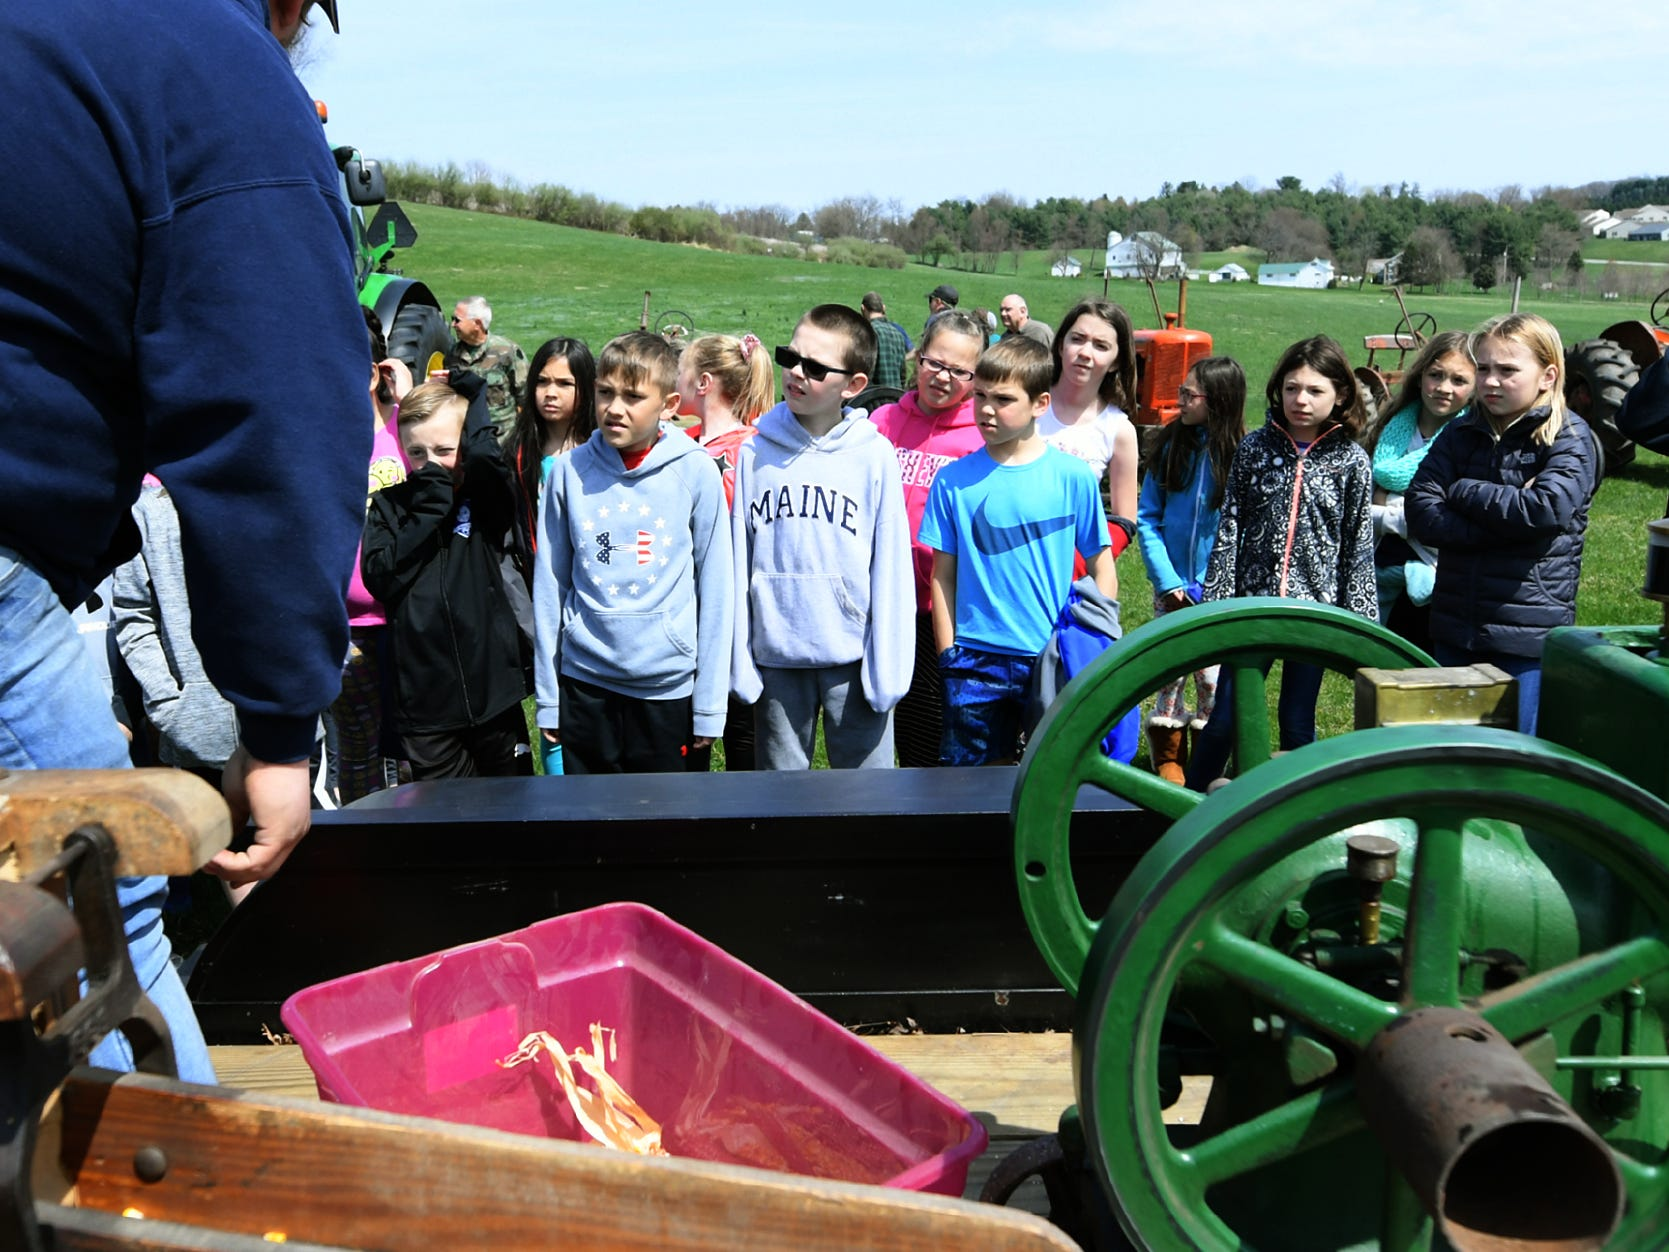 Spring Grove Elementary School students watch a demonstration during the district's 6th Annual Rollin' Tractor Show Thursday, April 11, 2019. The show is presented by the Future Farmers Club. Alumni and area residents brought farm equipment to display with the goal of acquainting students with the agriculture industry. The show, which included a parade of equipment, visited the intermediate and elementary schools. Bill Kalina photo